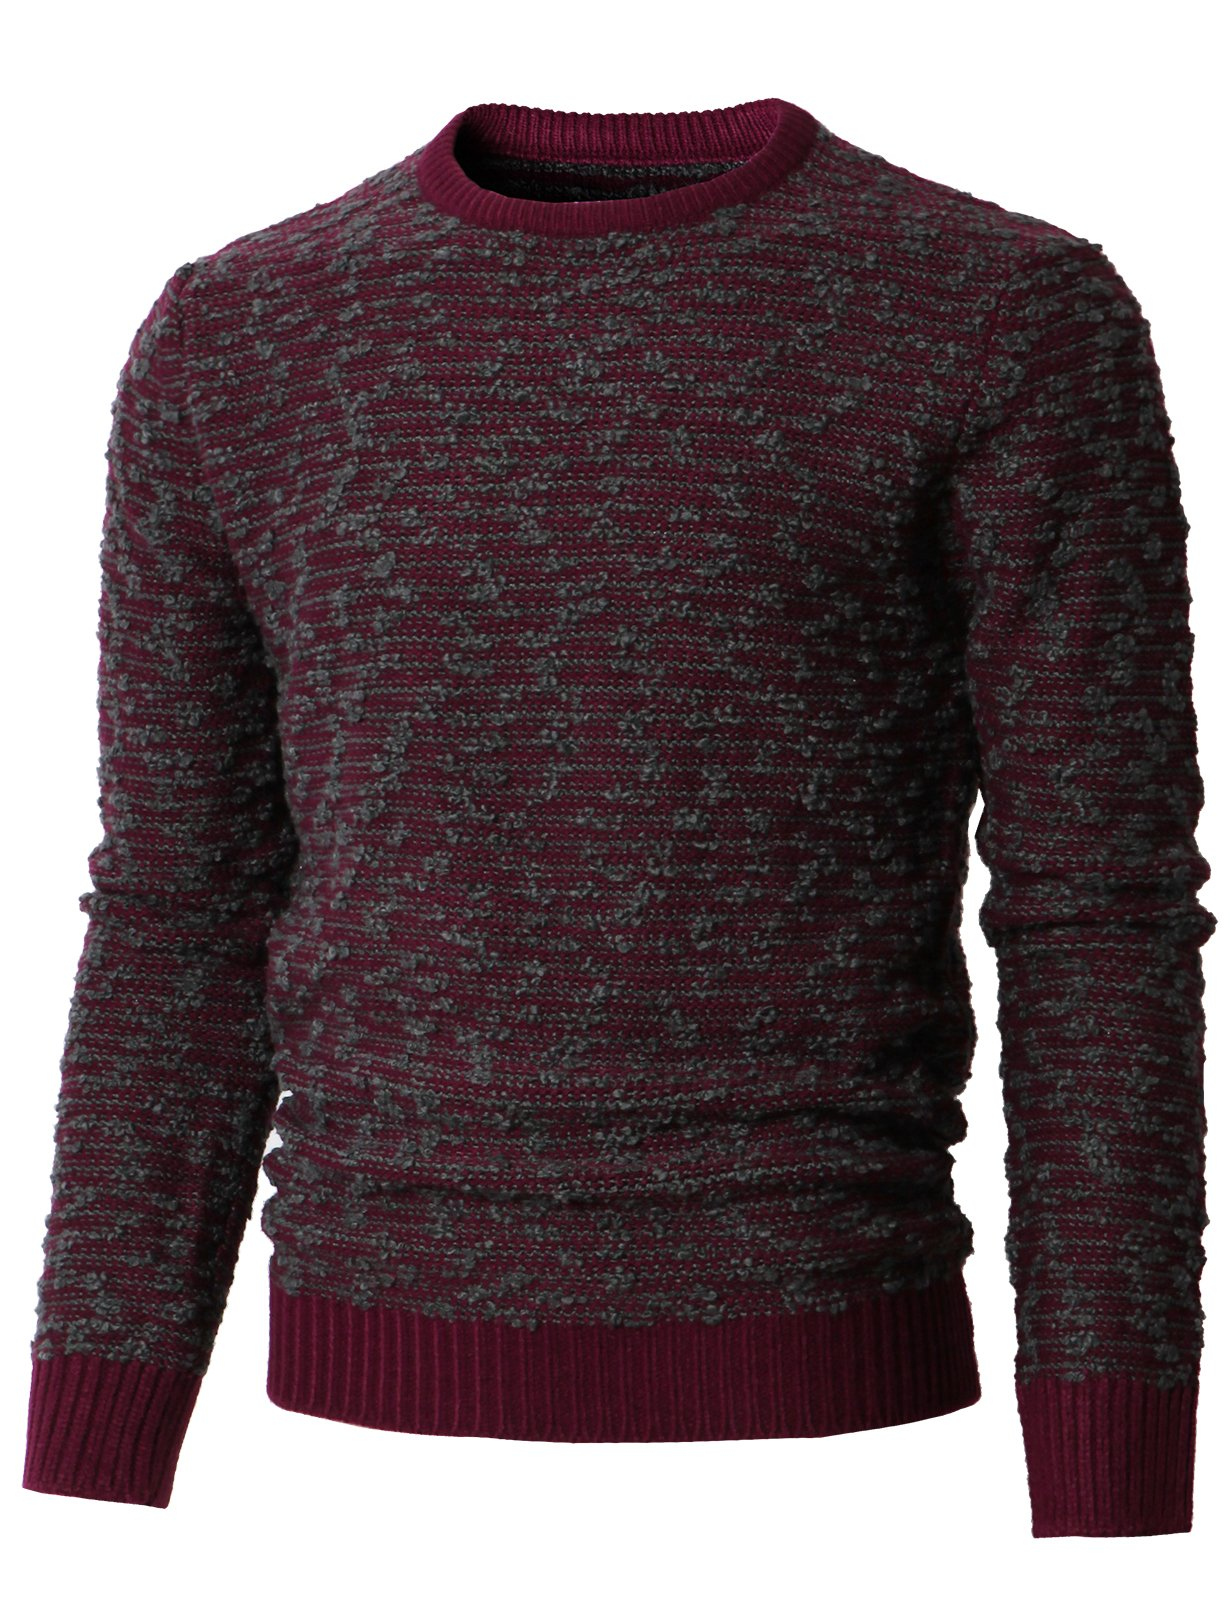 H2H Mens Chic Fine Knit O-Neck Coton Jumper Pullover Contrast Color Sweater Wine US S/Asia M (KMOSWL0234)